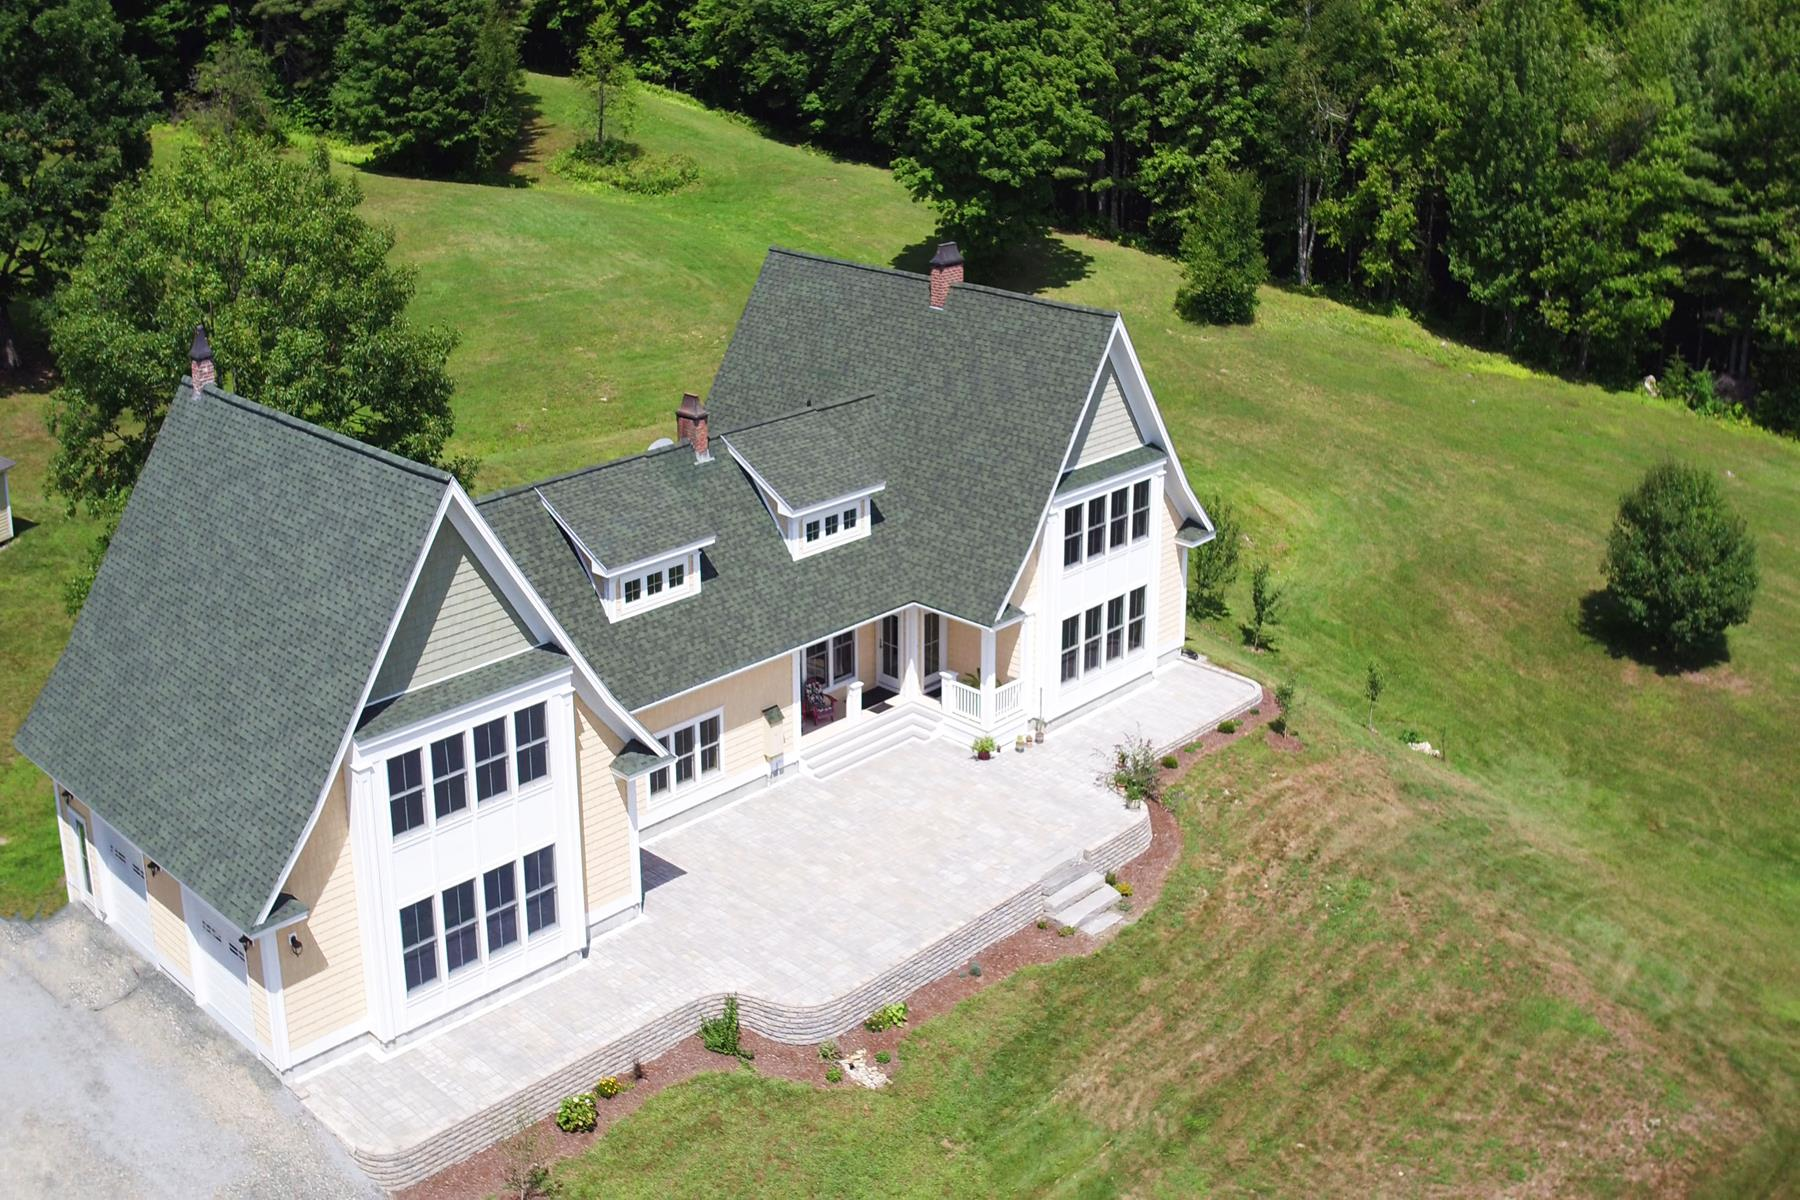 Single Family Home for Sale at 226 Old North Rd, Wilmot Wilmot, New Hampshire, 03287 United States